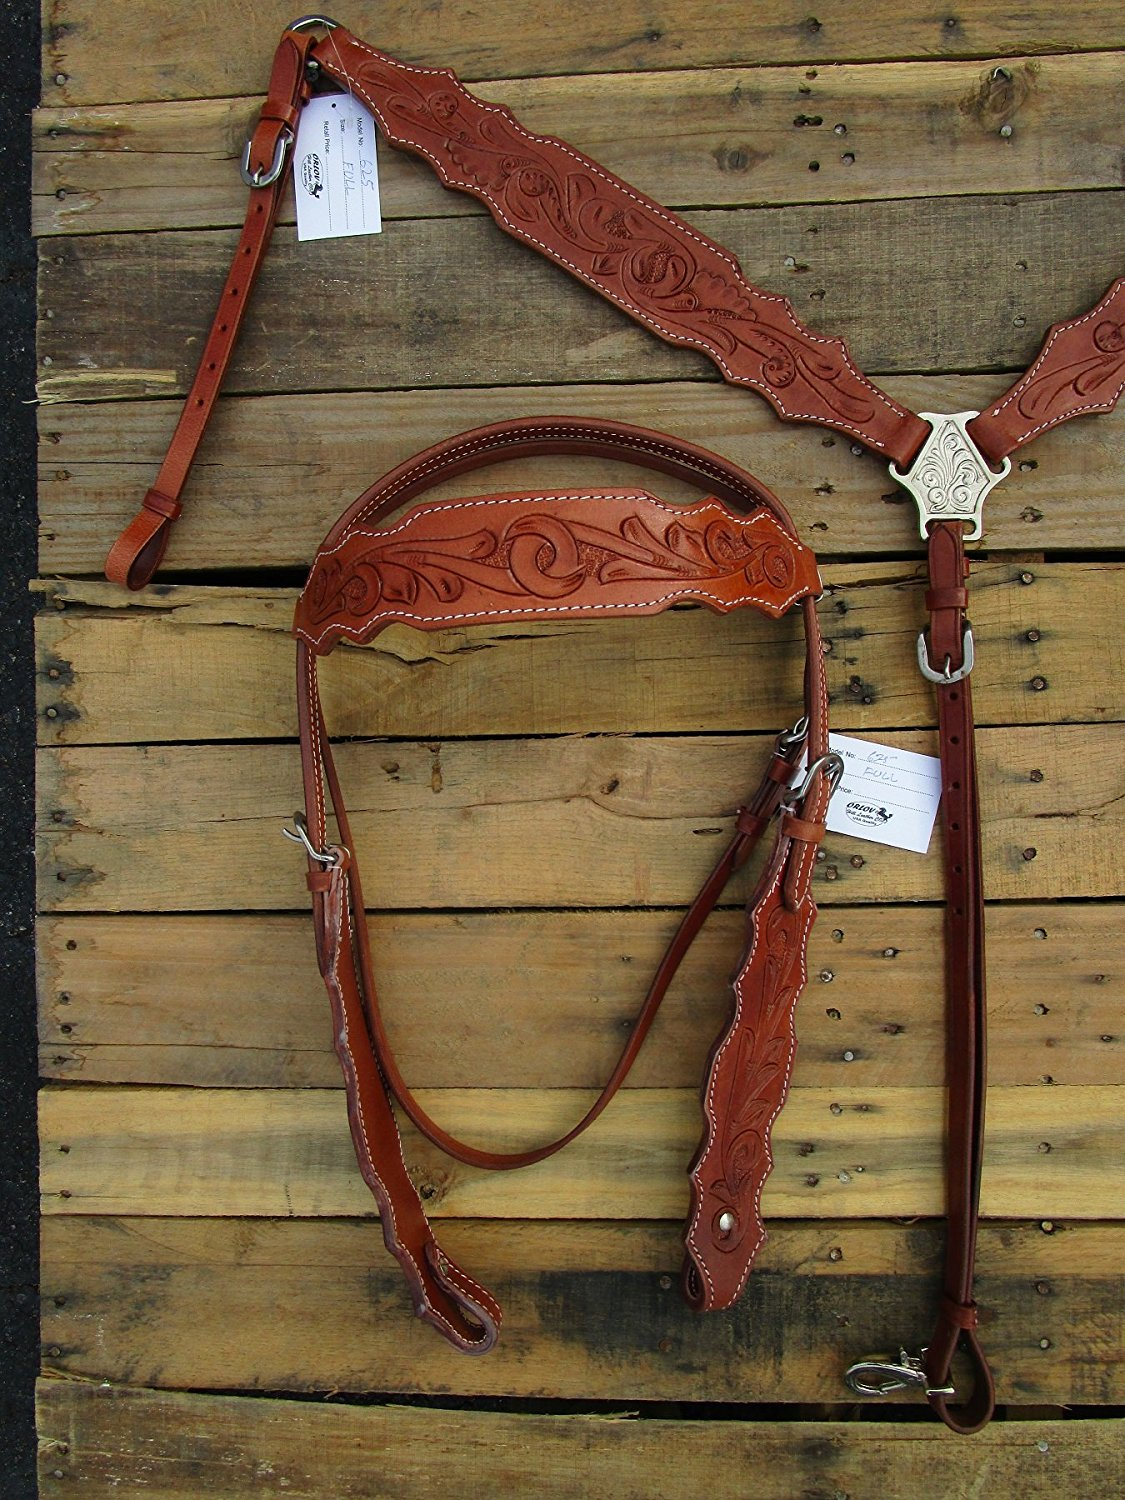 Headstall Breast Collar Floral Tooled Leather Western Horse Bridle